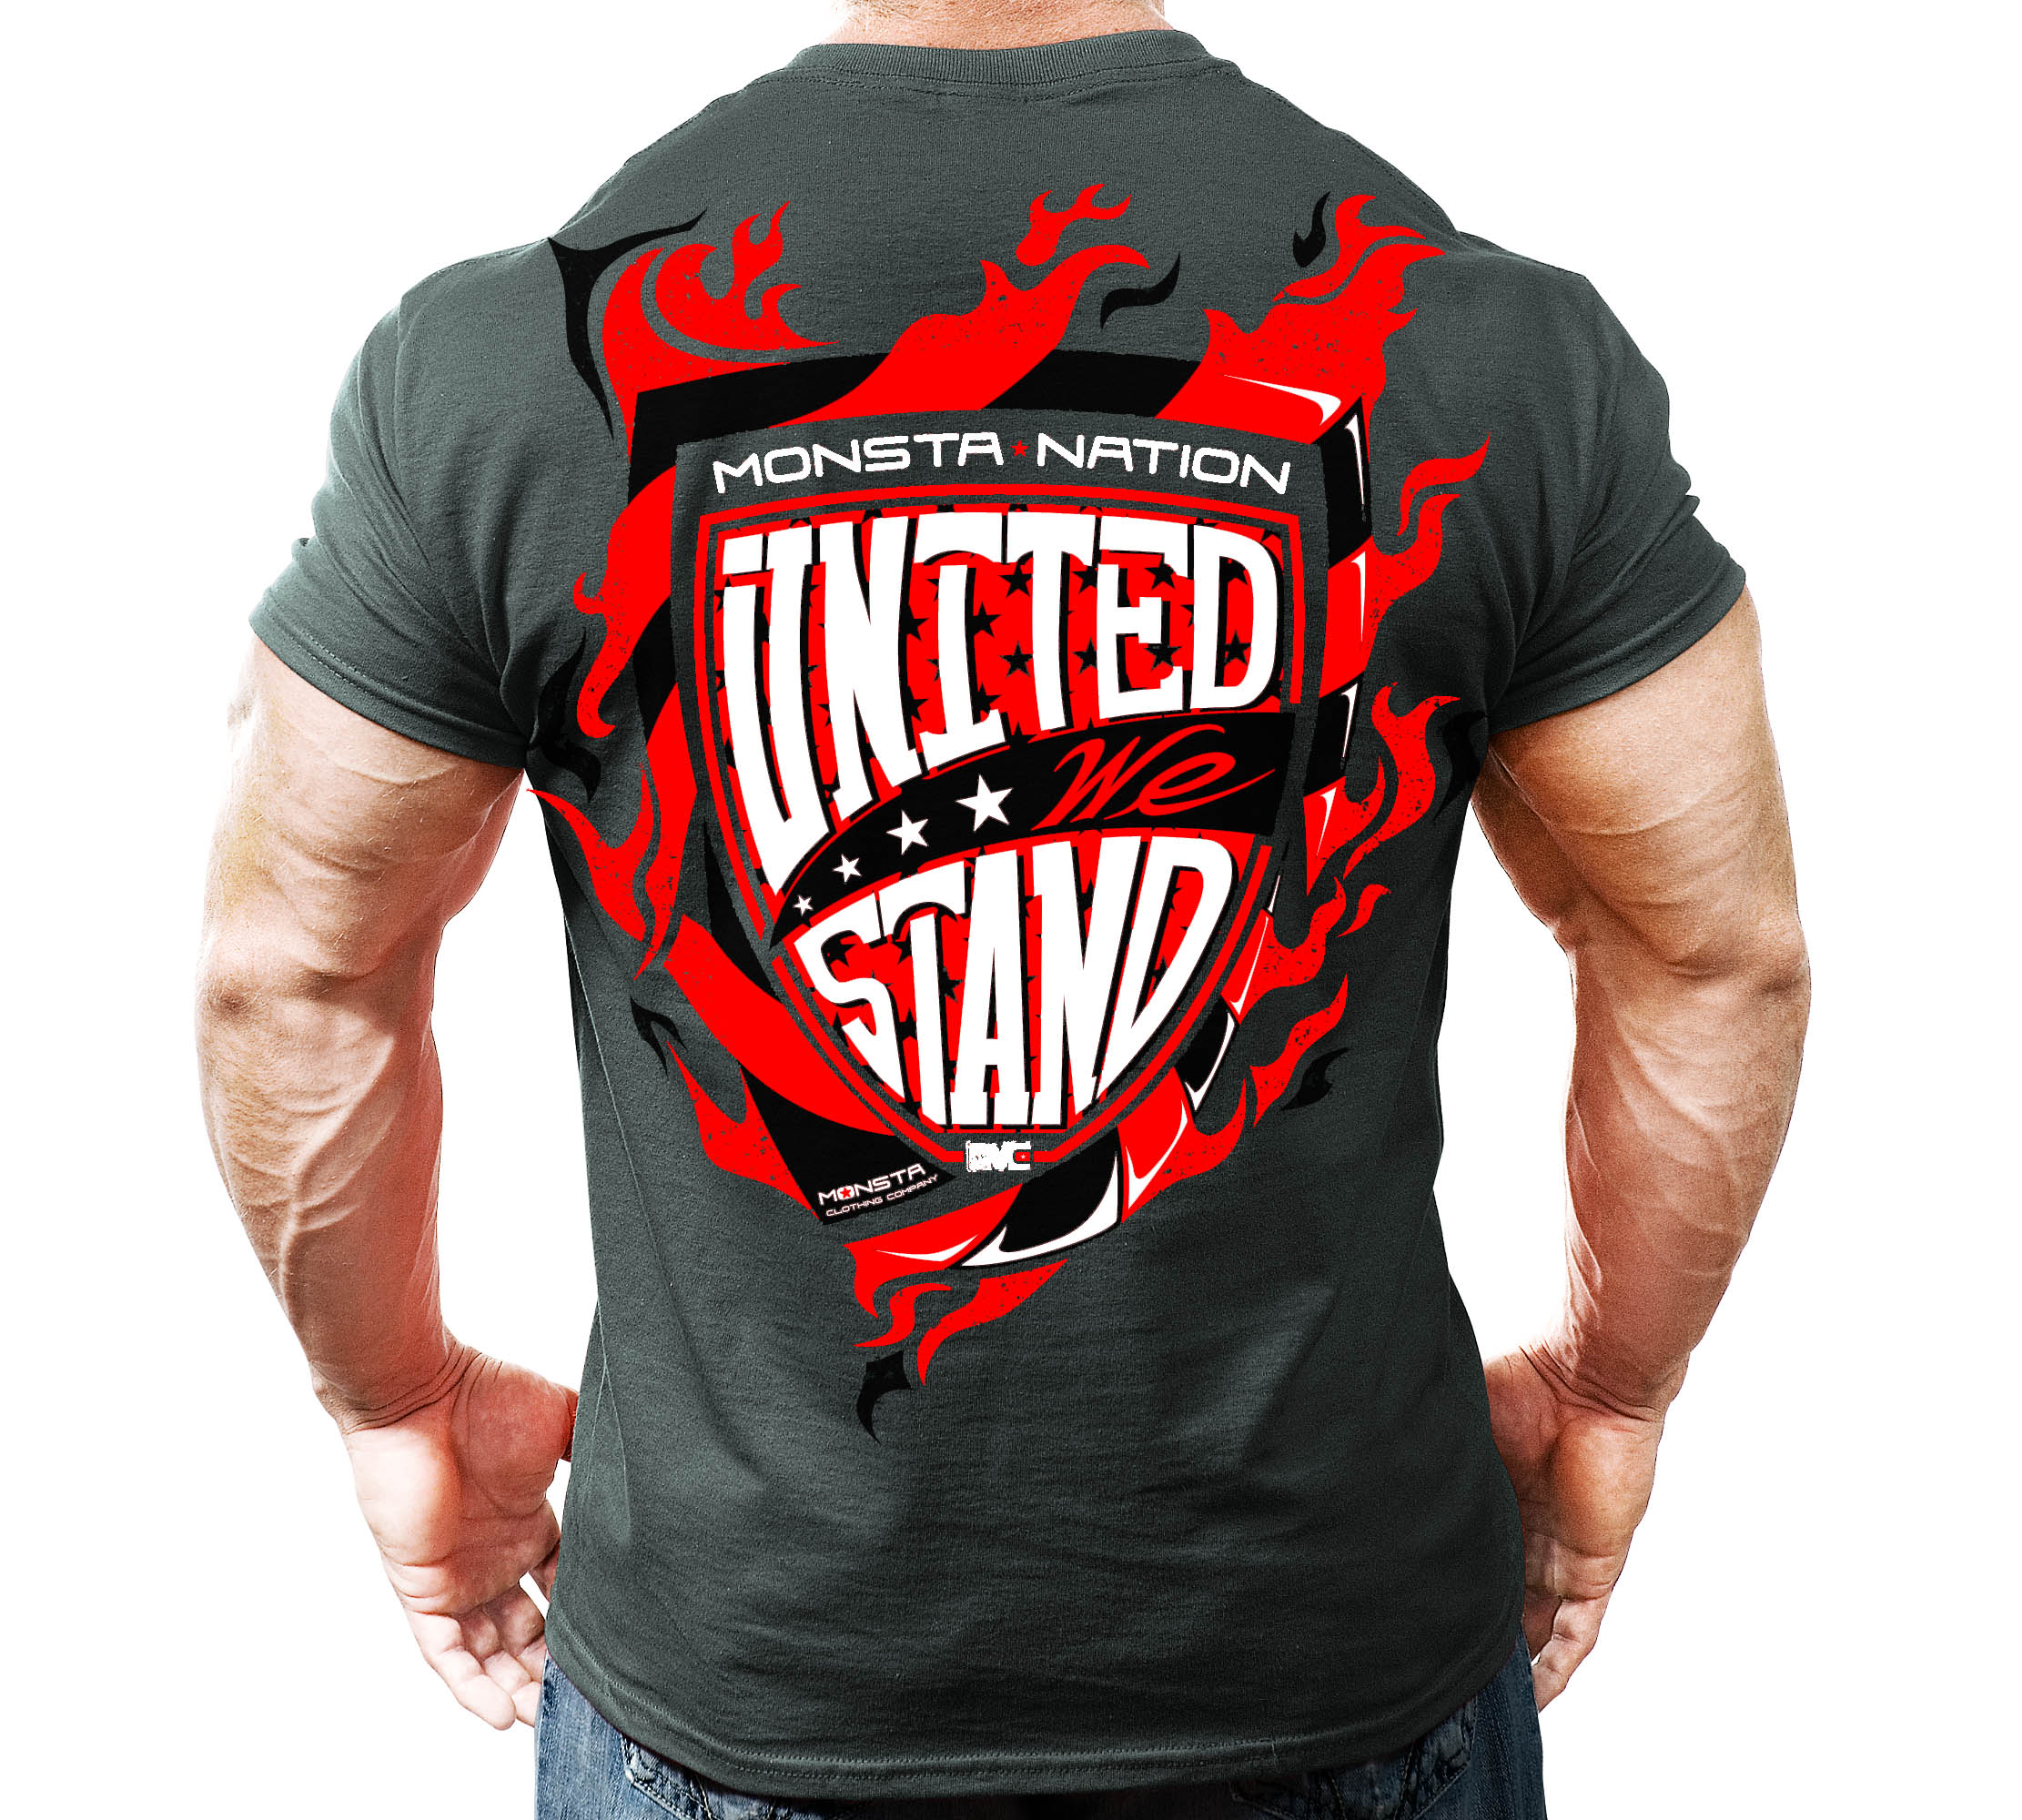 Workout Clothing Sale Monsta Nation United We Stand T